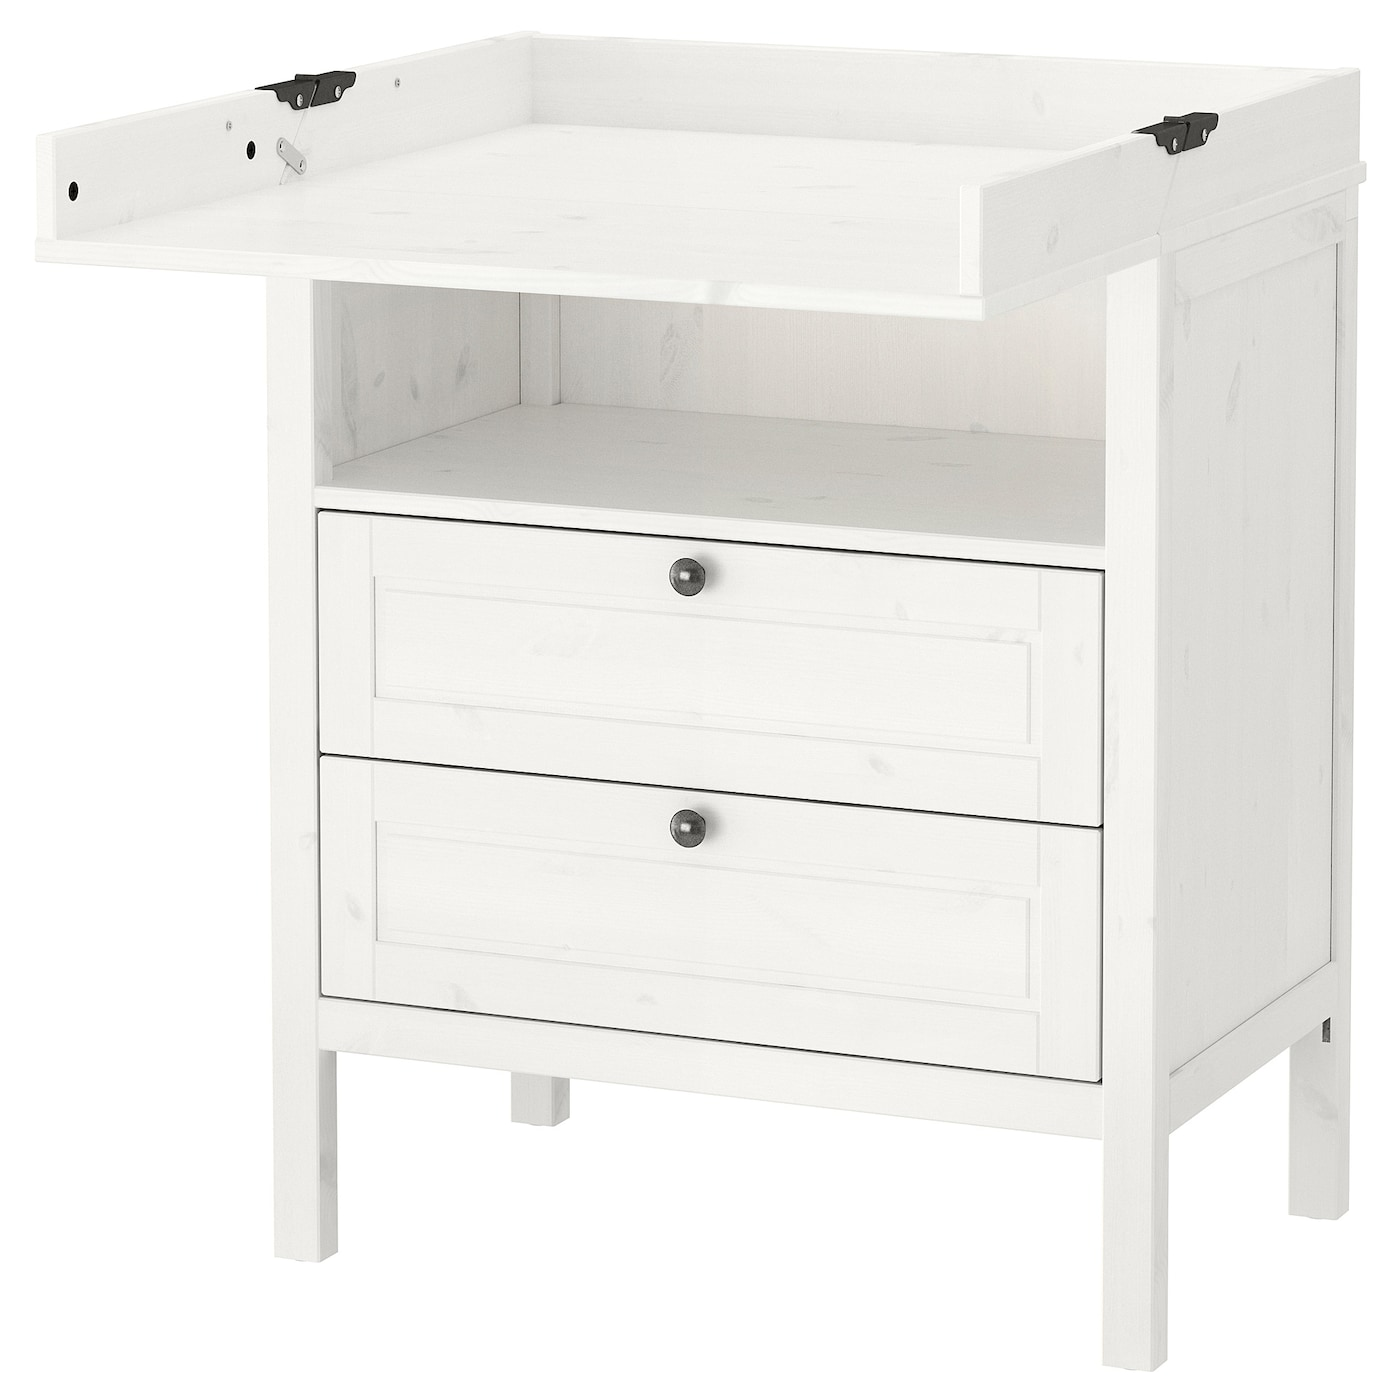 Ikea Sundvik Changing Table Chest Of Drawers Comfortable Height For The Baby